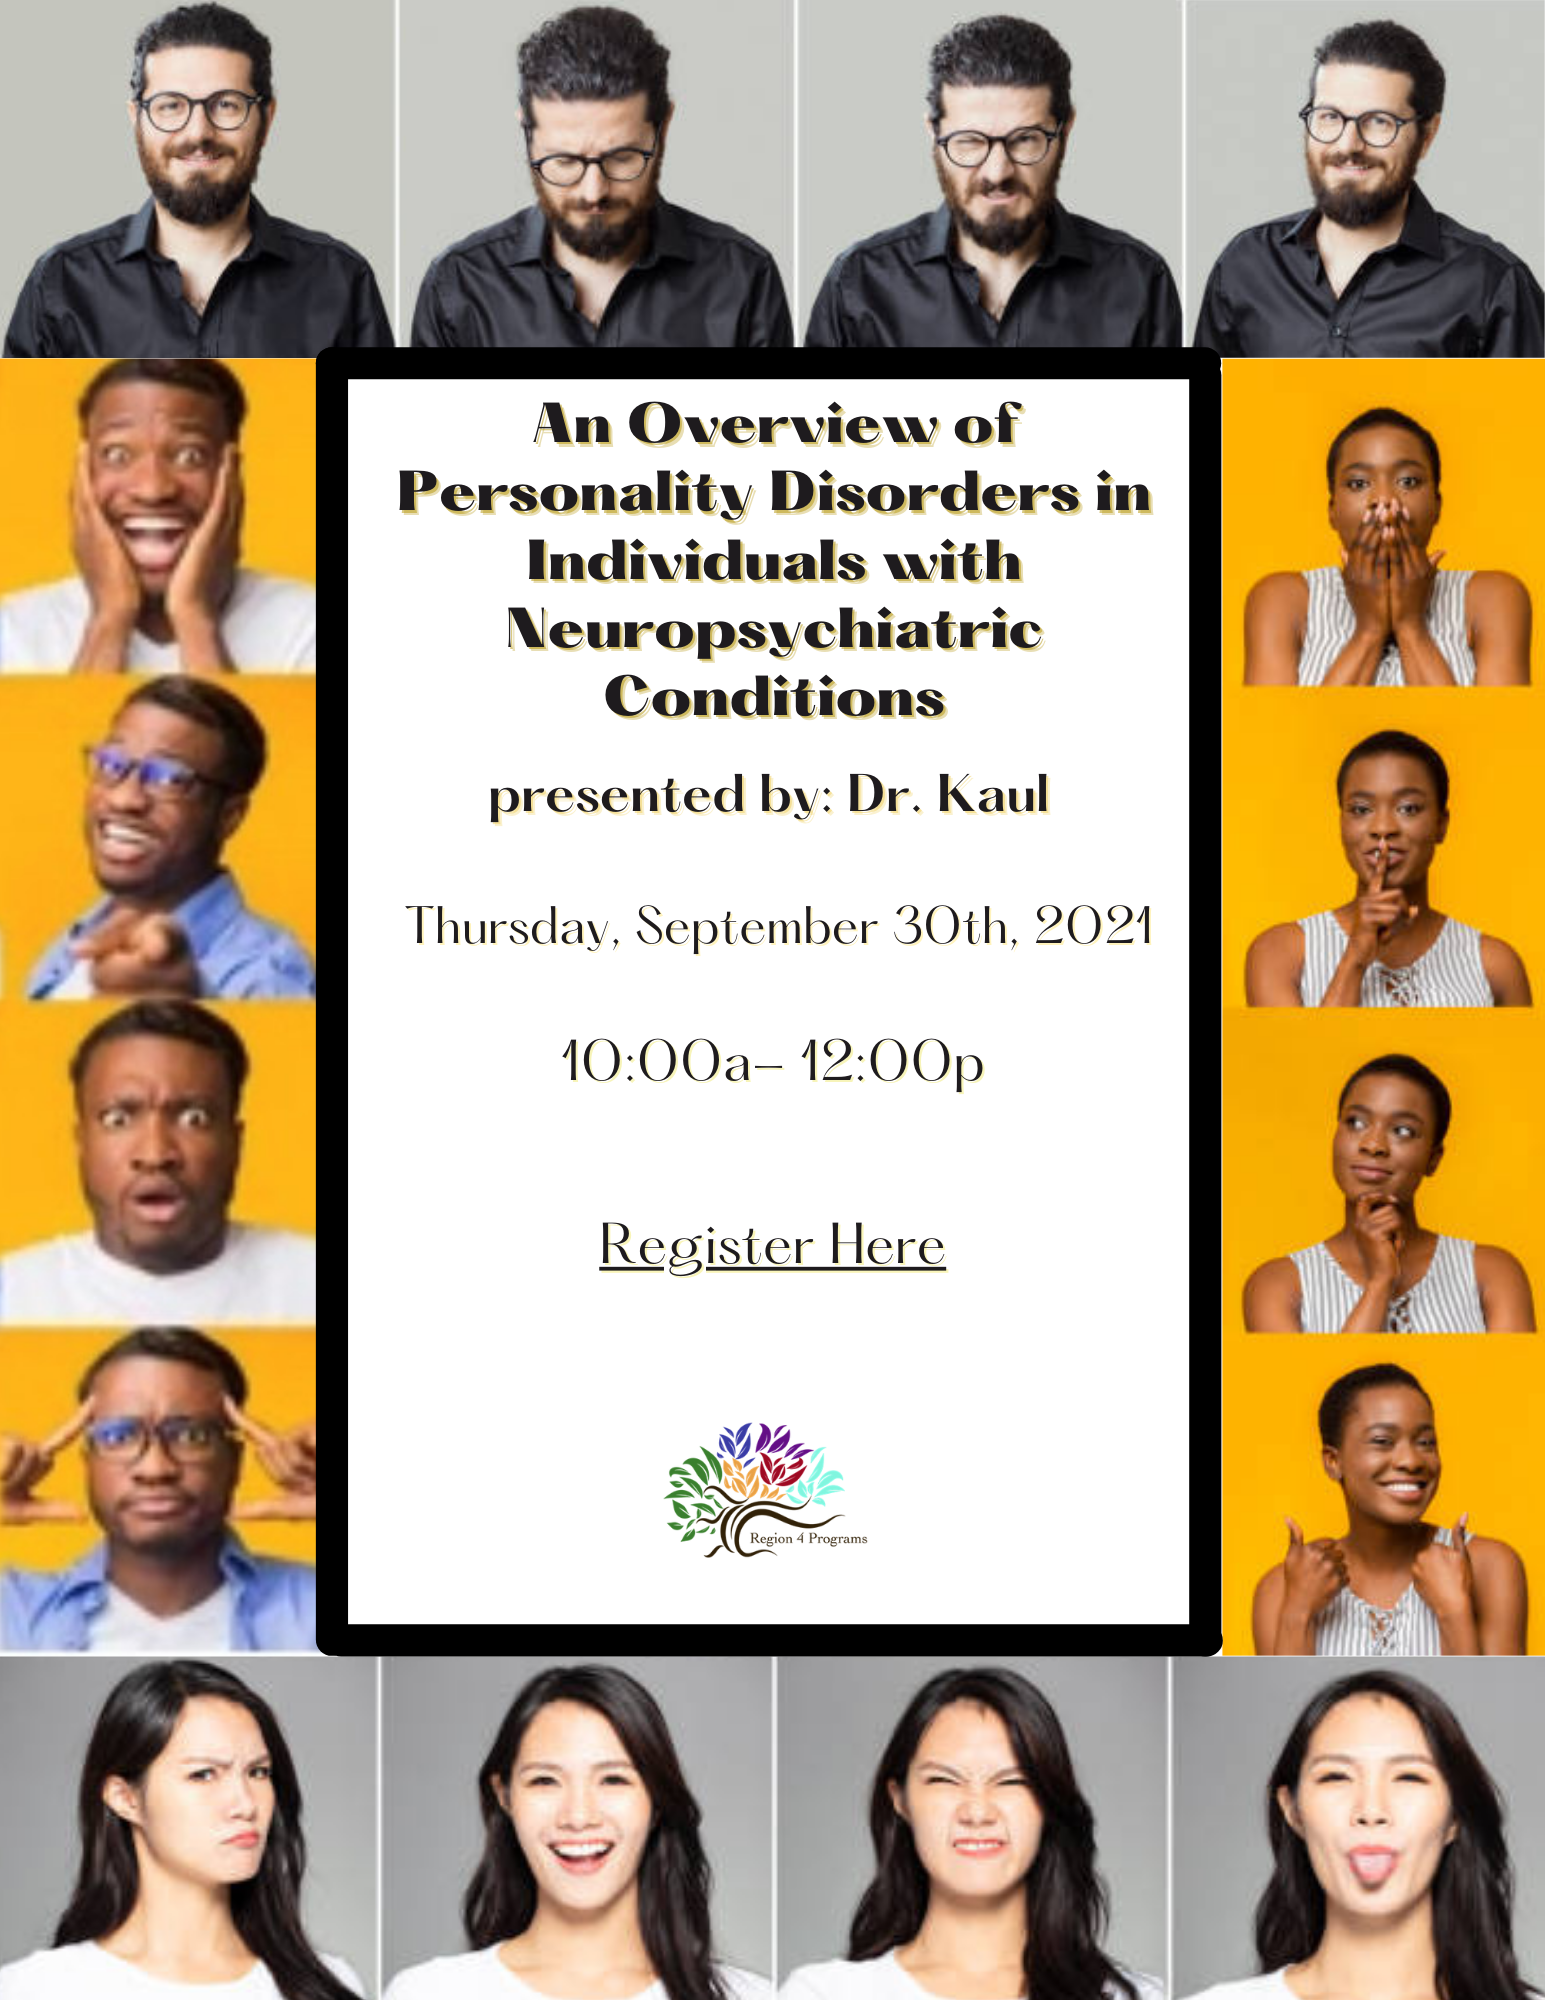 An-Overview-of-Personality-Disorders-in-Individuals-with-Neuropsychiatric-Conditions-